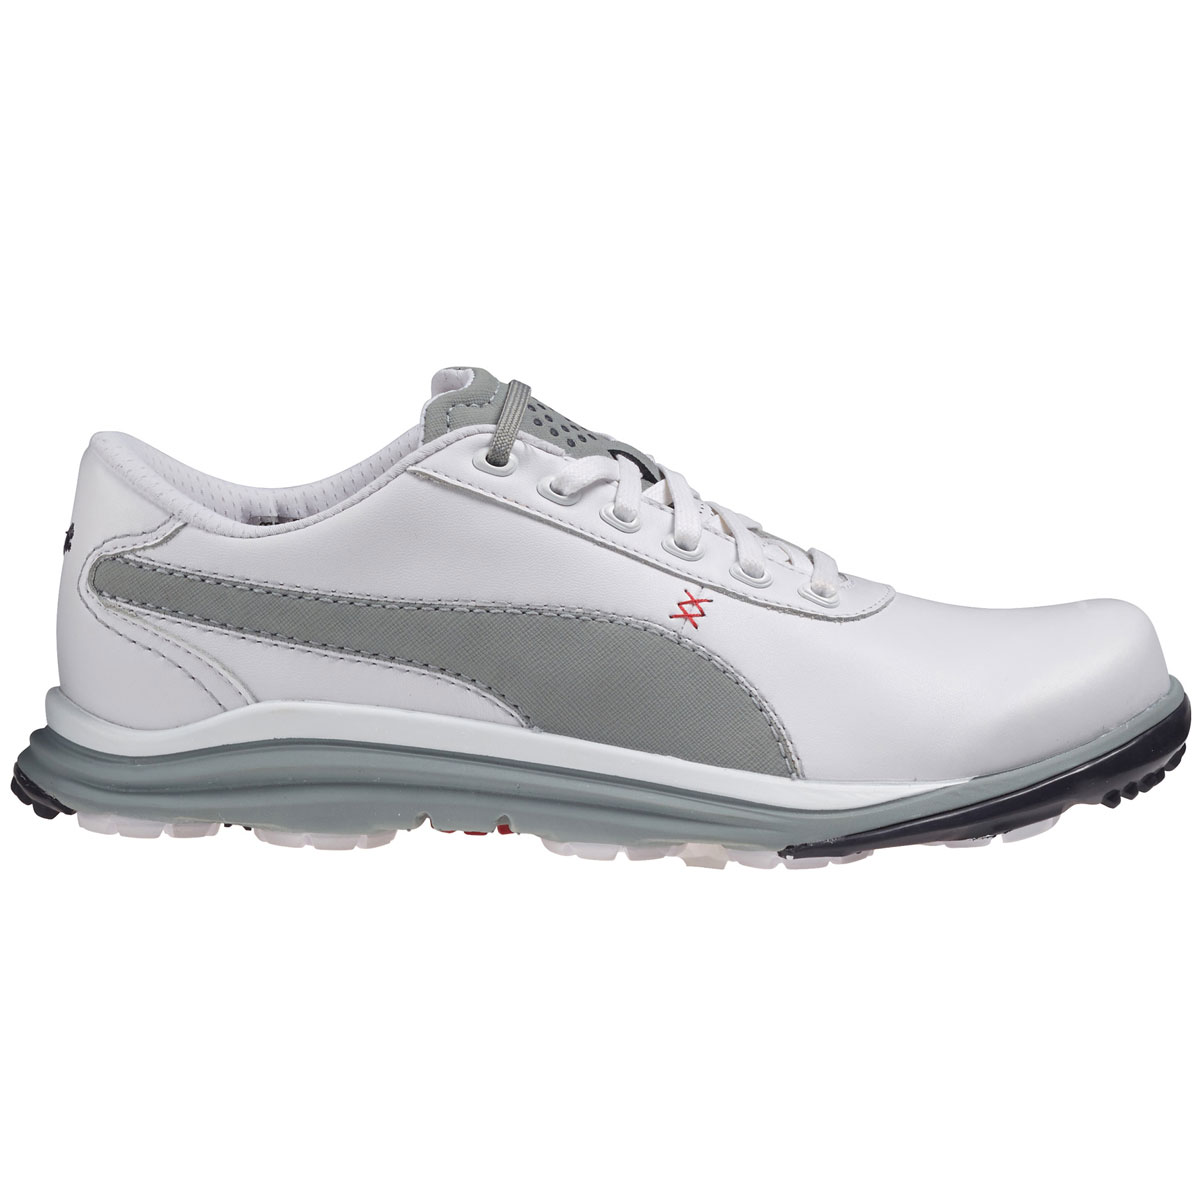 Puma Golf Mens BioDrive Leather Waterproof Spikeless Golf Shoes 40% OFF  RRP; Picture 2 of 3 ...